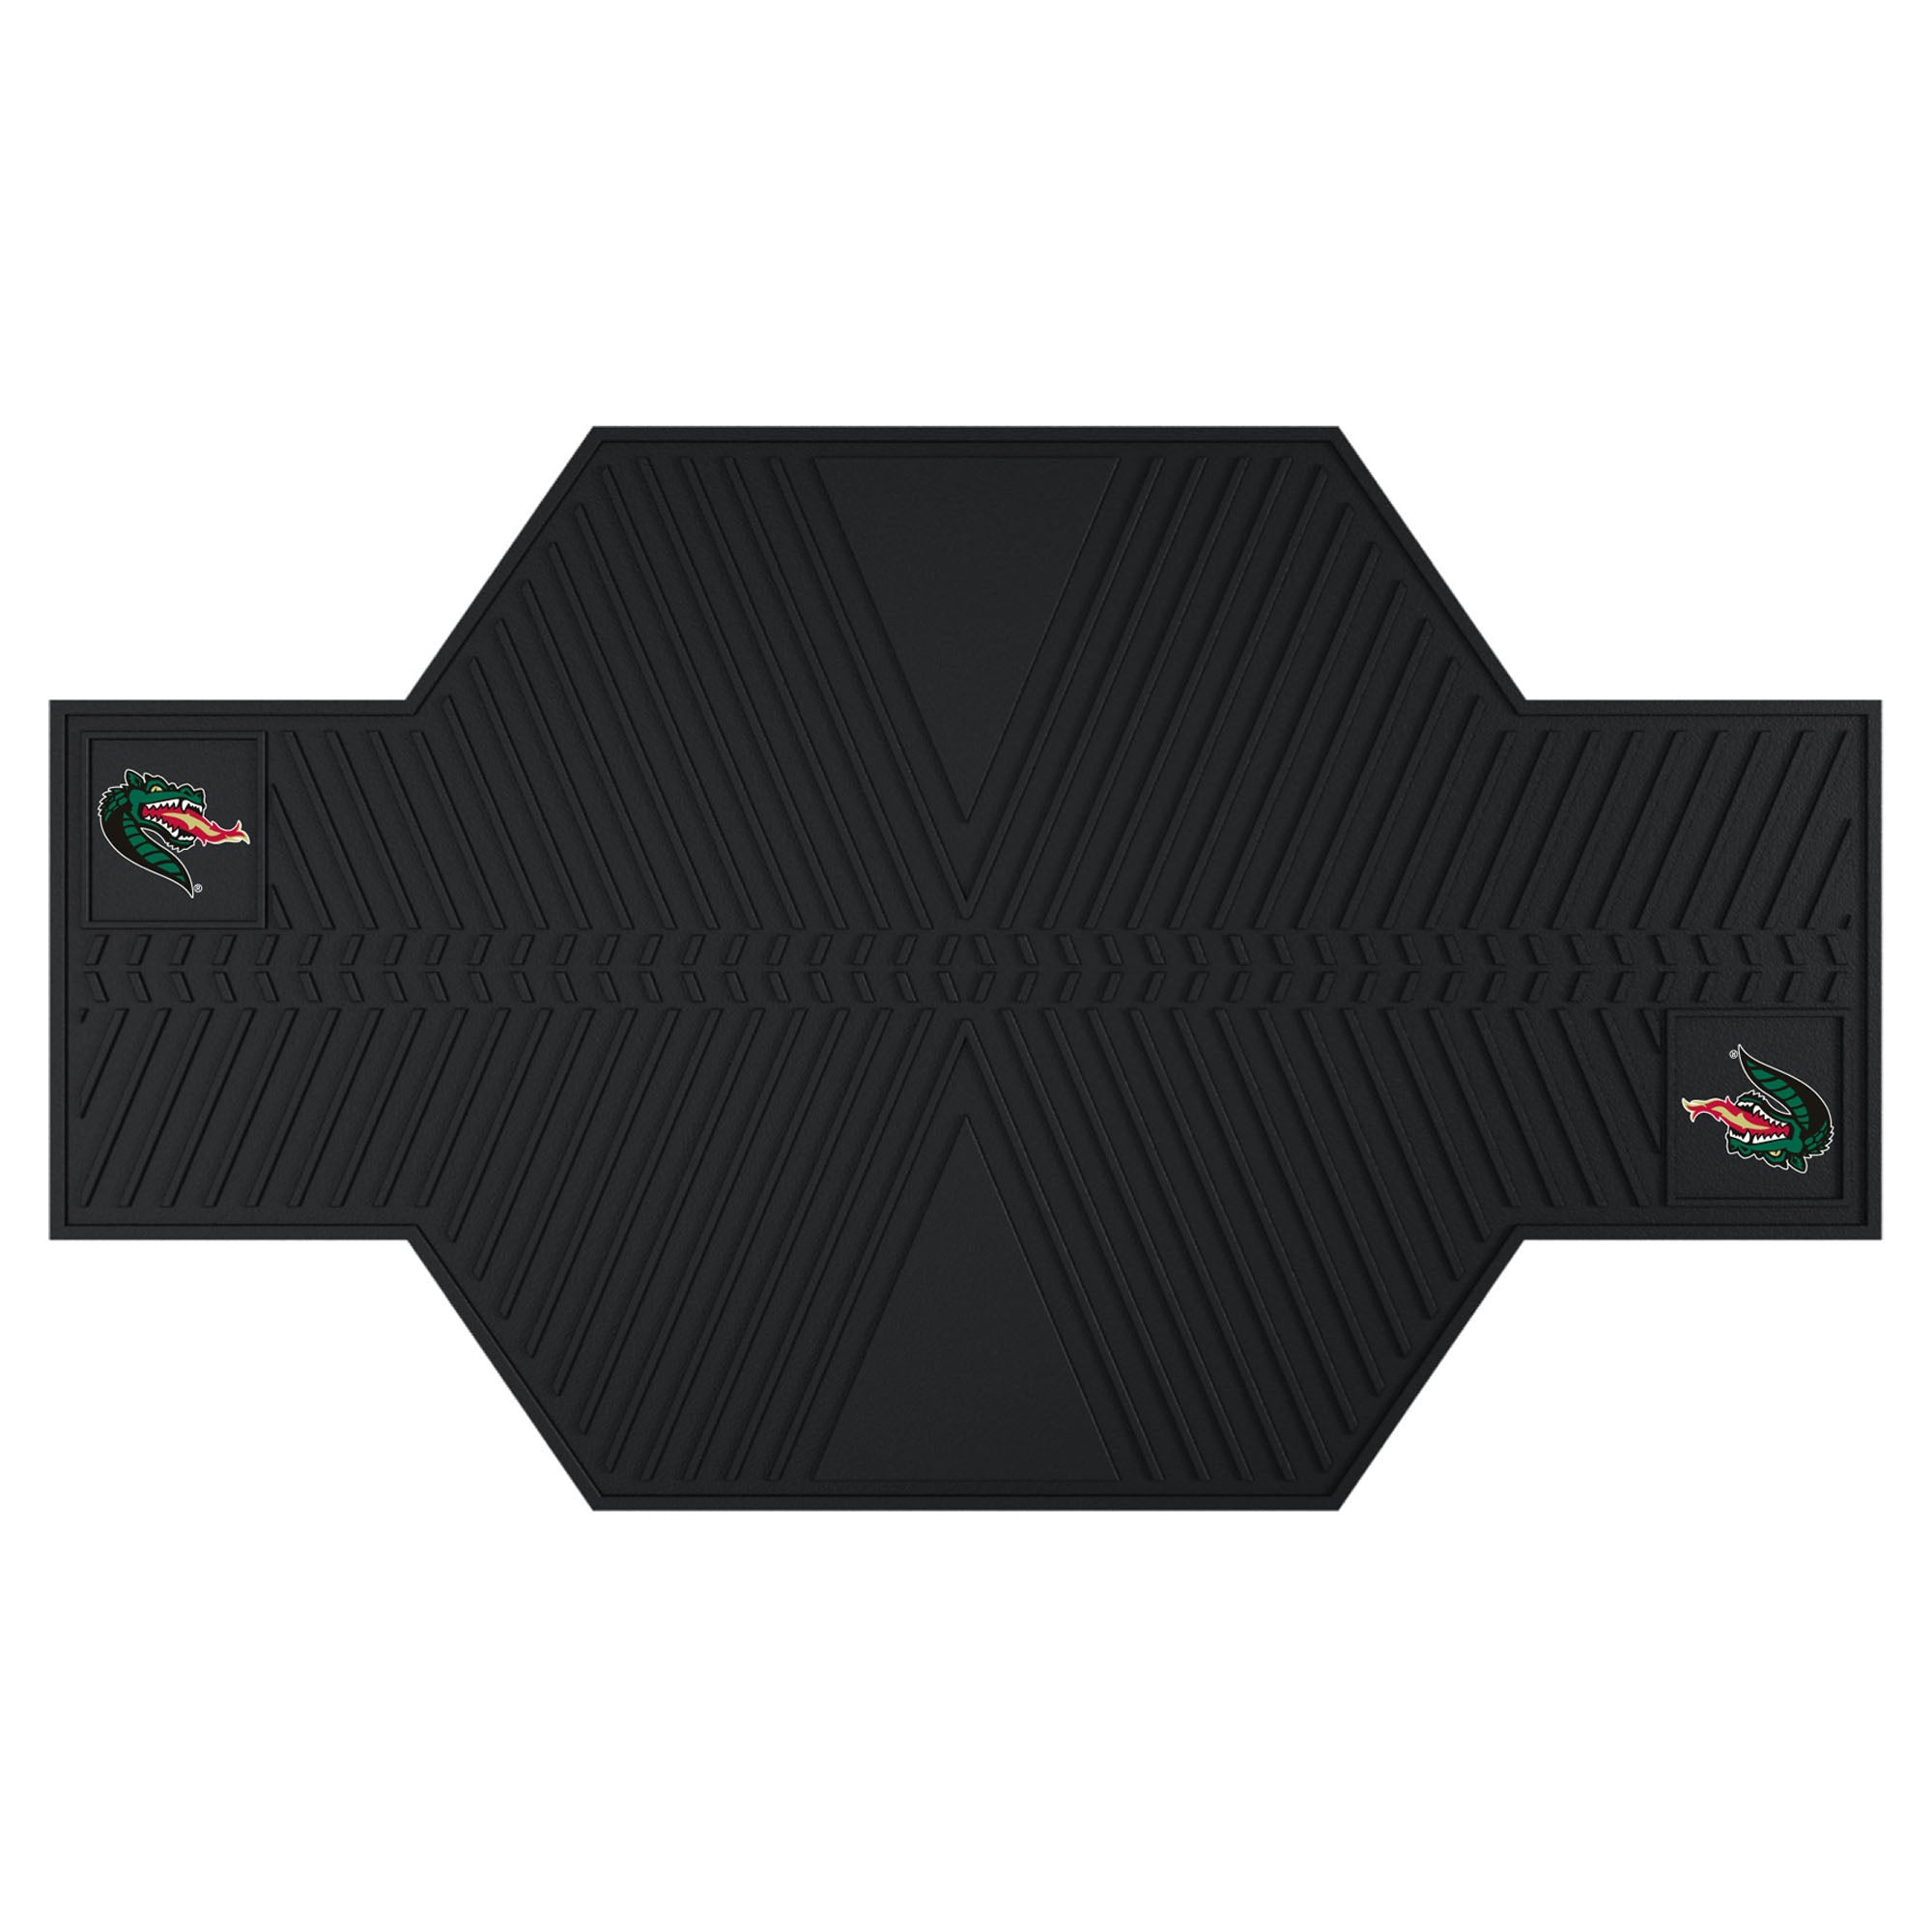 "University of Alabama at Birmingham Motorcycle Mat 82.5""x42"""